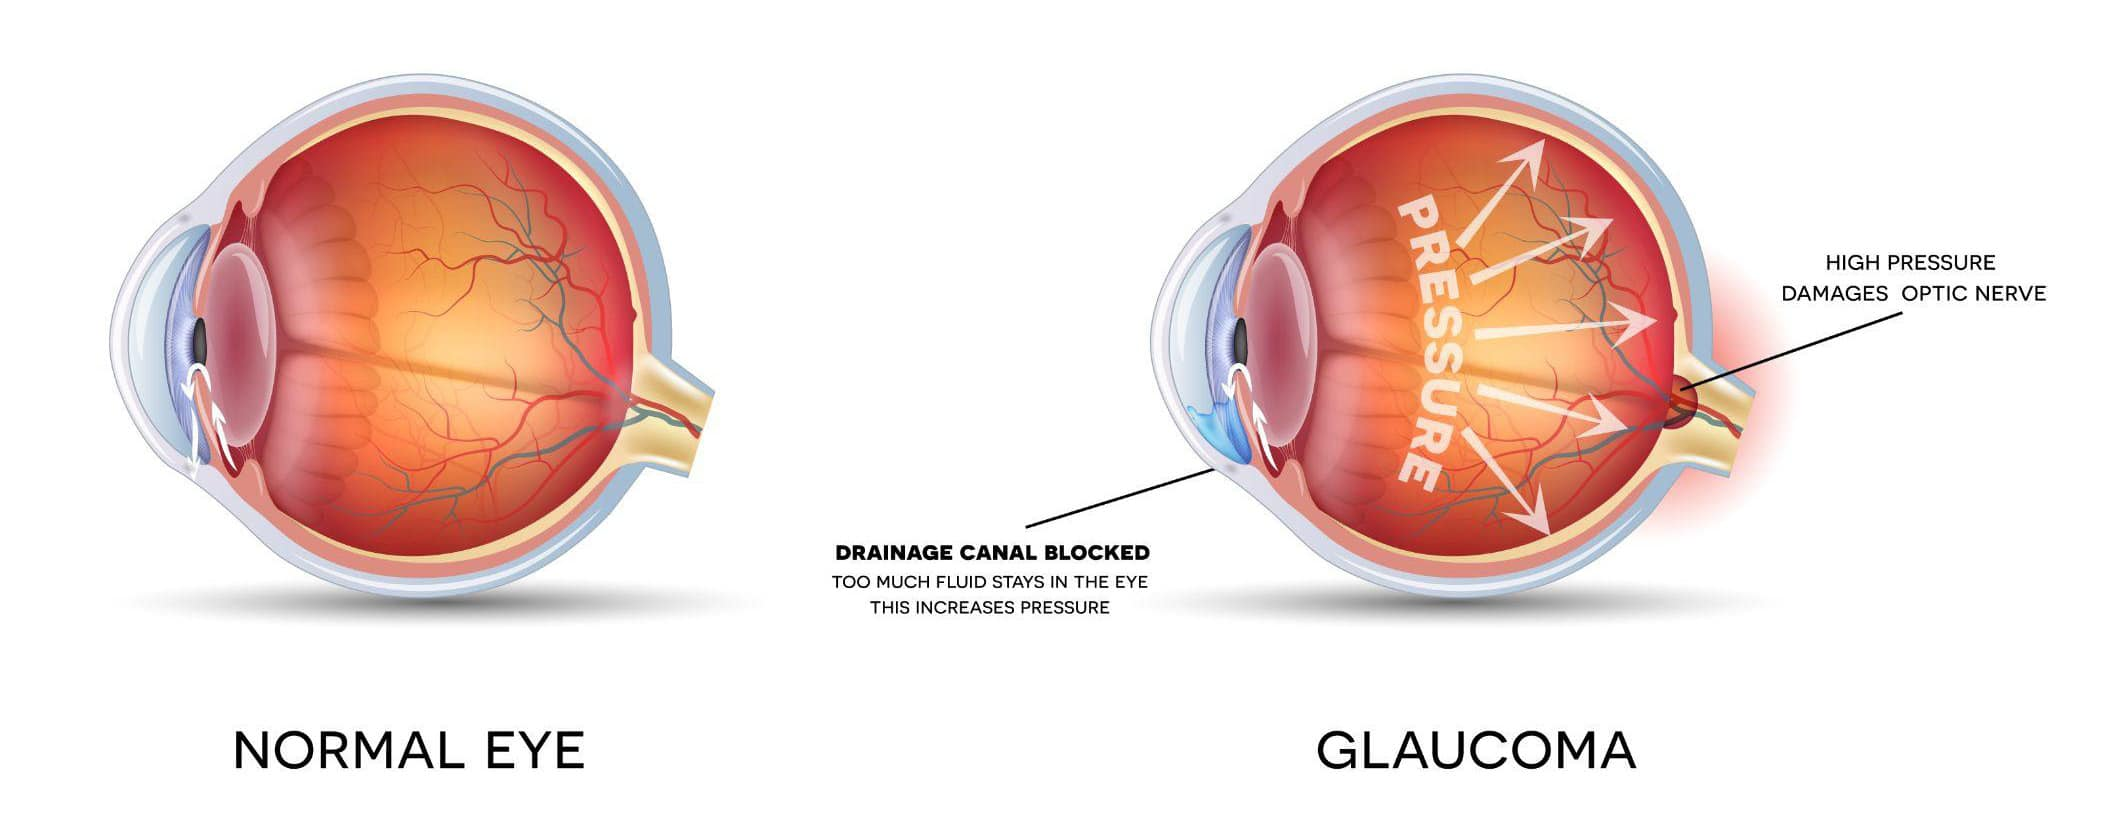 image showing the difference between a normal eye and an eye with glaucoma